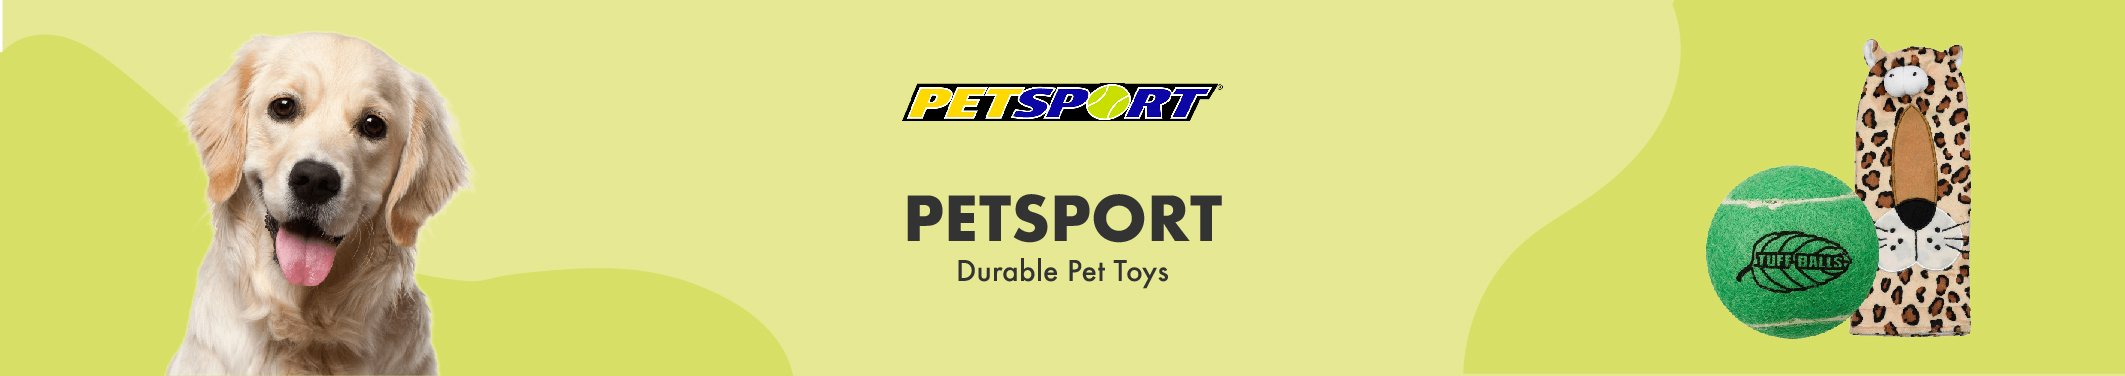 Petsport	Durable Pet Toys